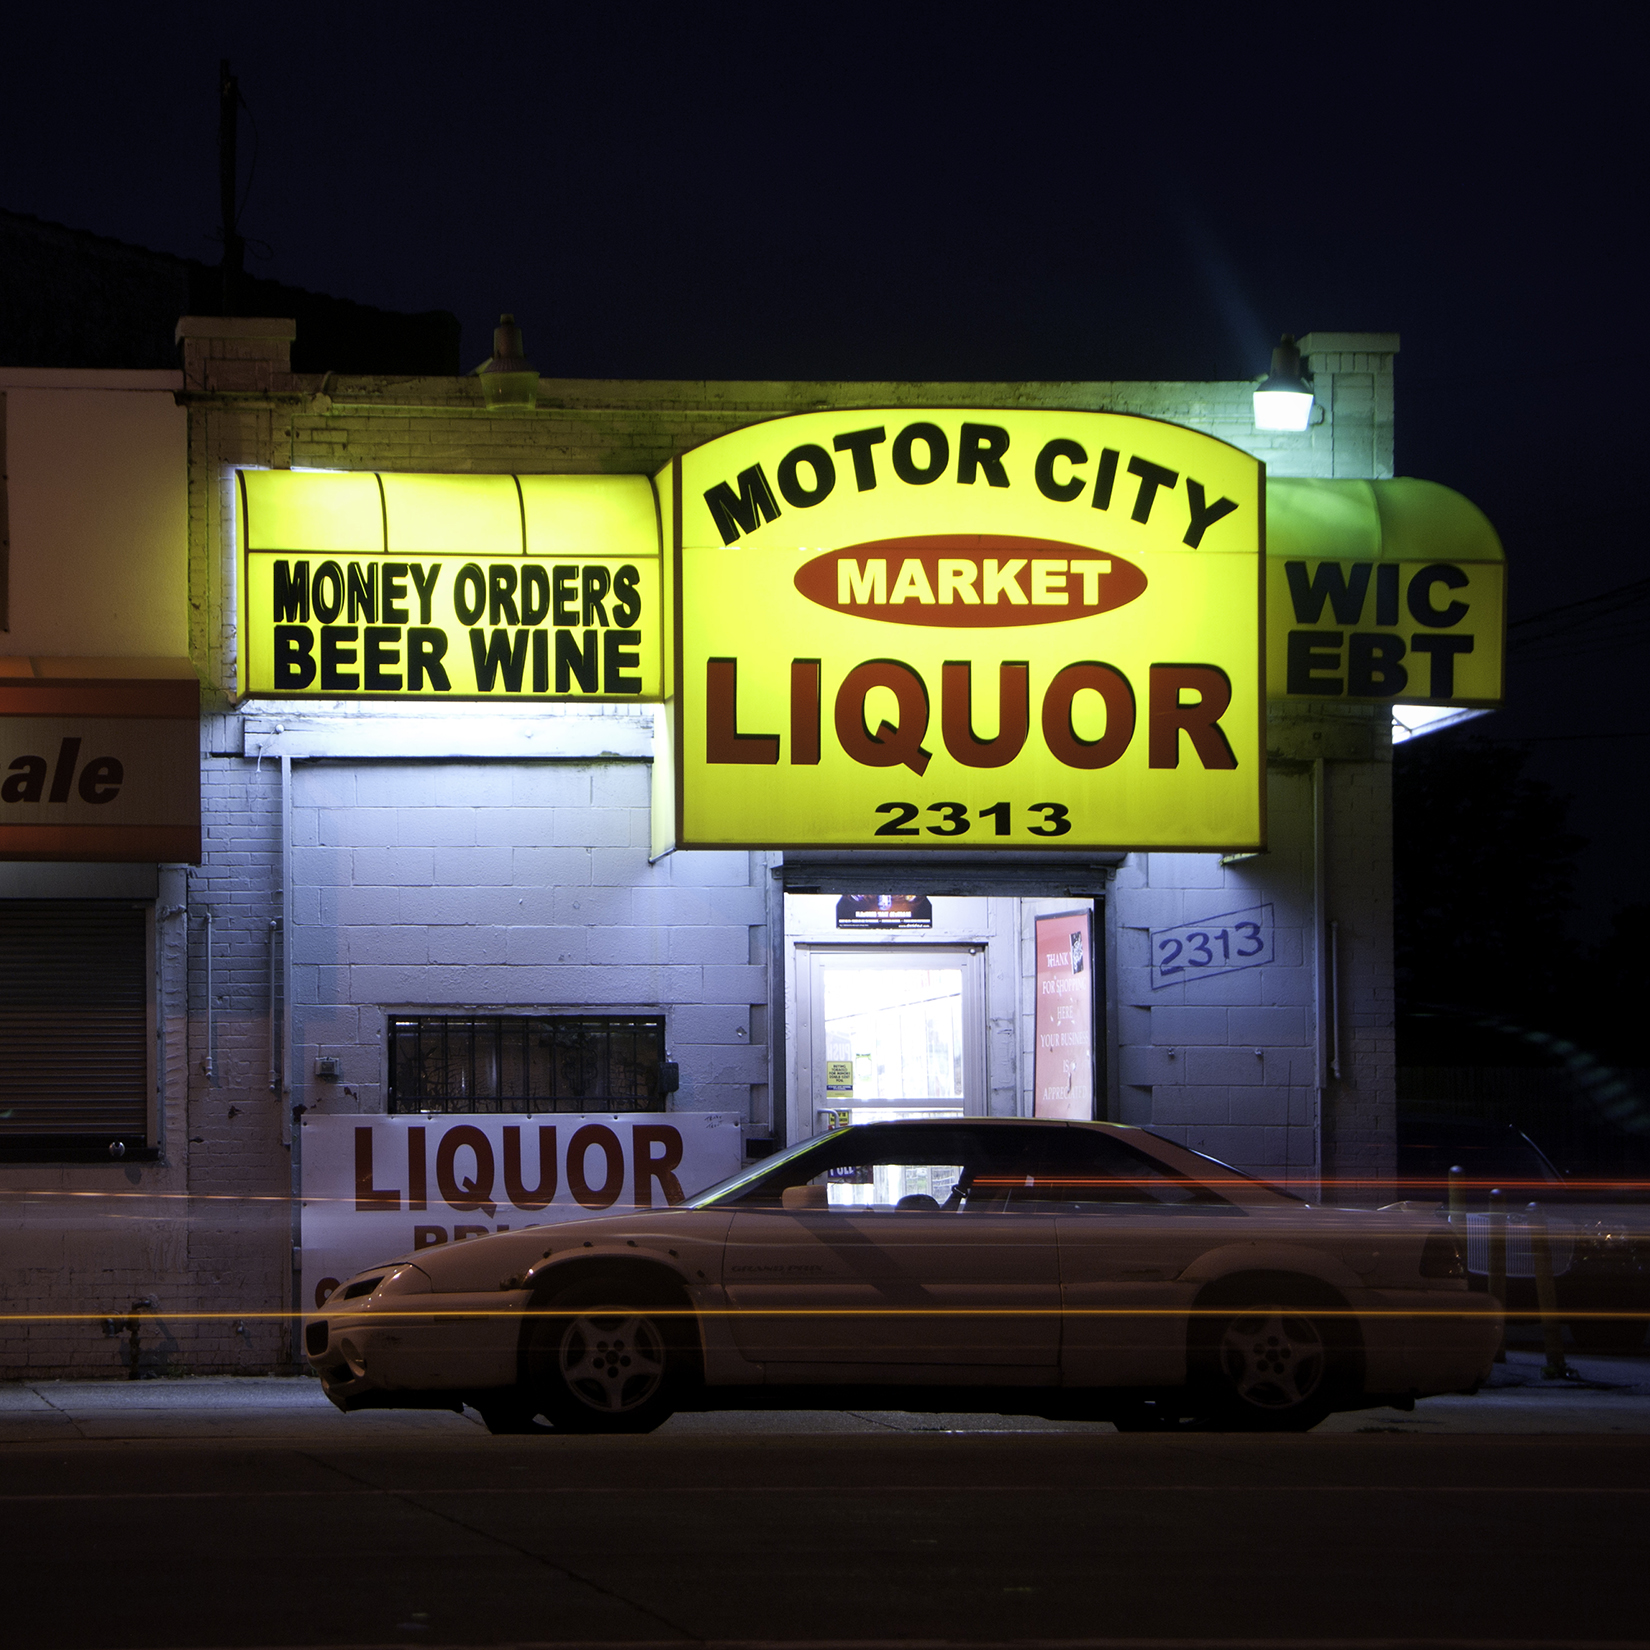 Motor City Market Liquor 2012